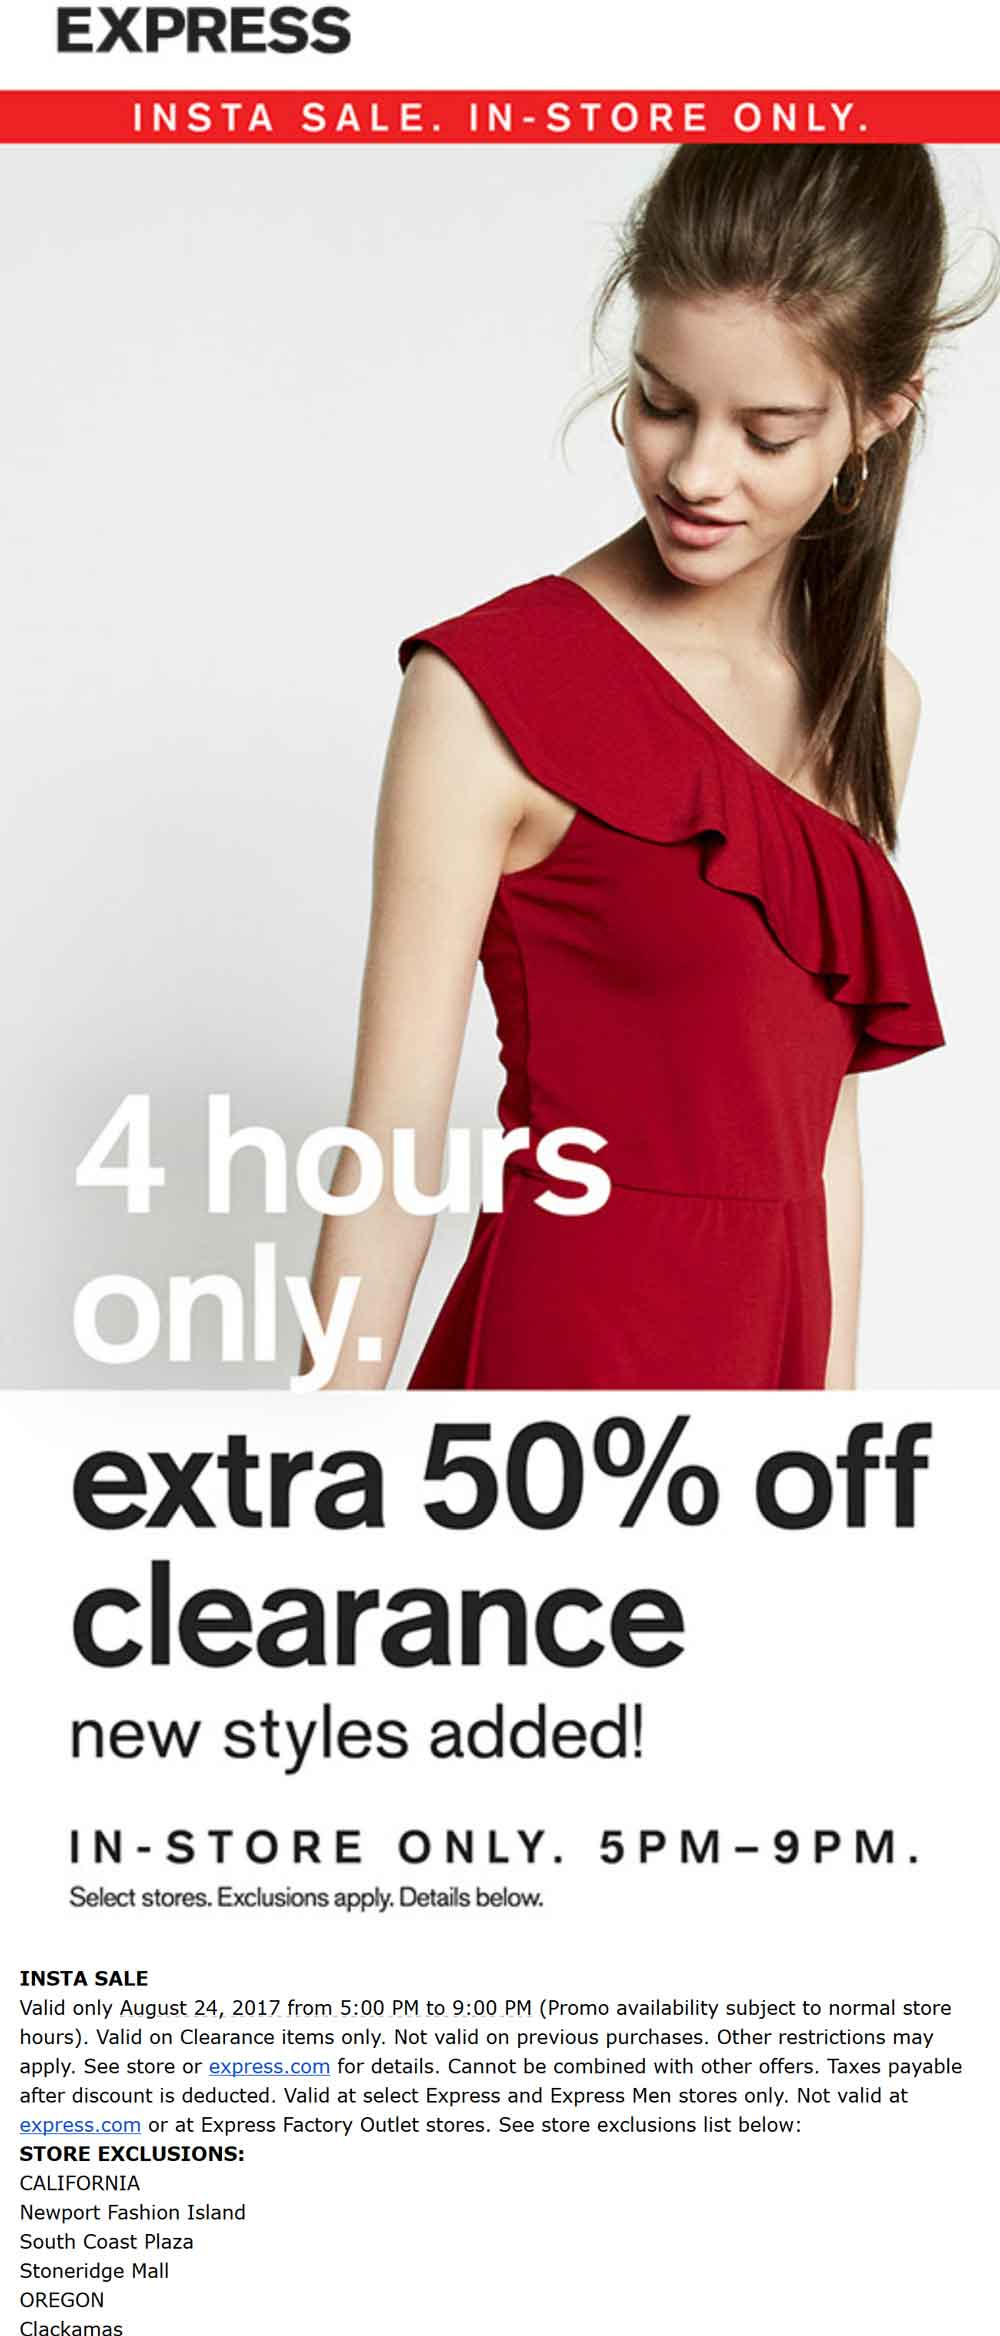 Express Coupon April 2019 Extra 50% off clearance 5-9p tonight at Express